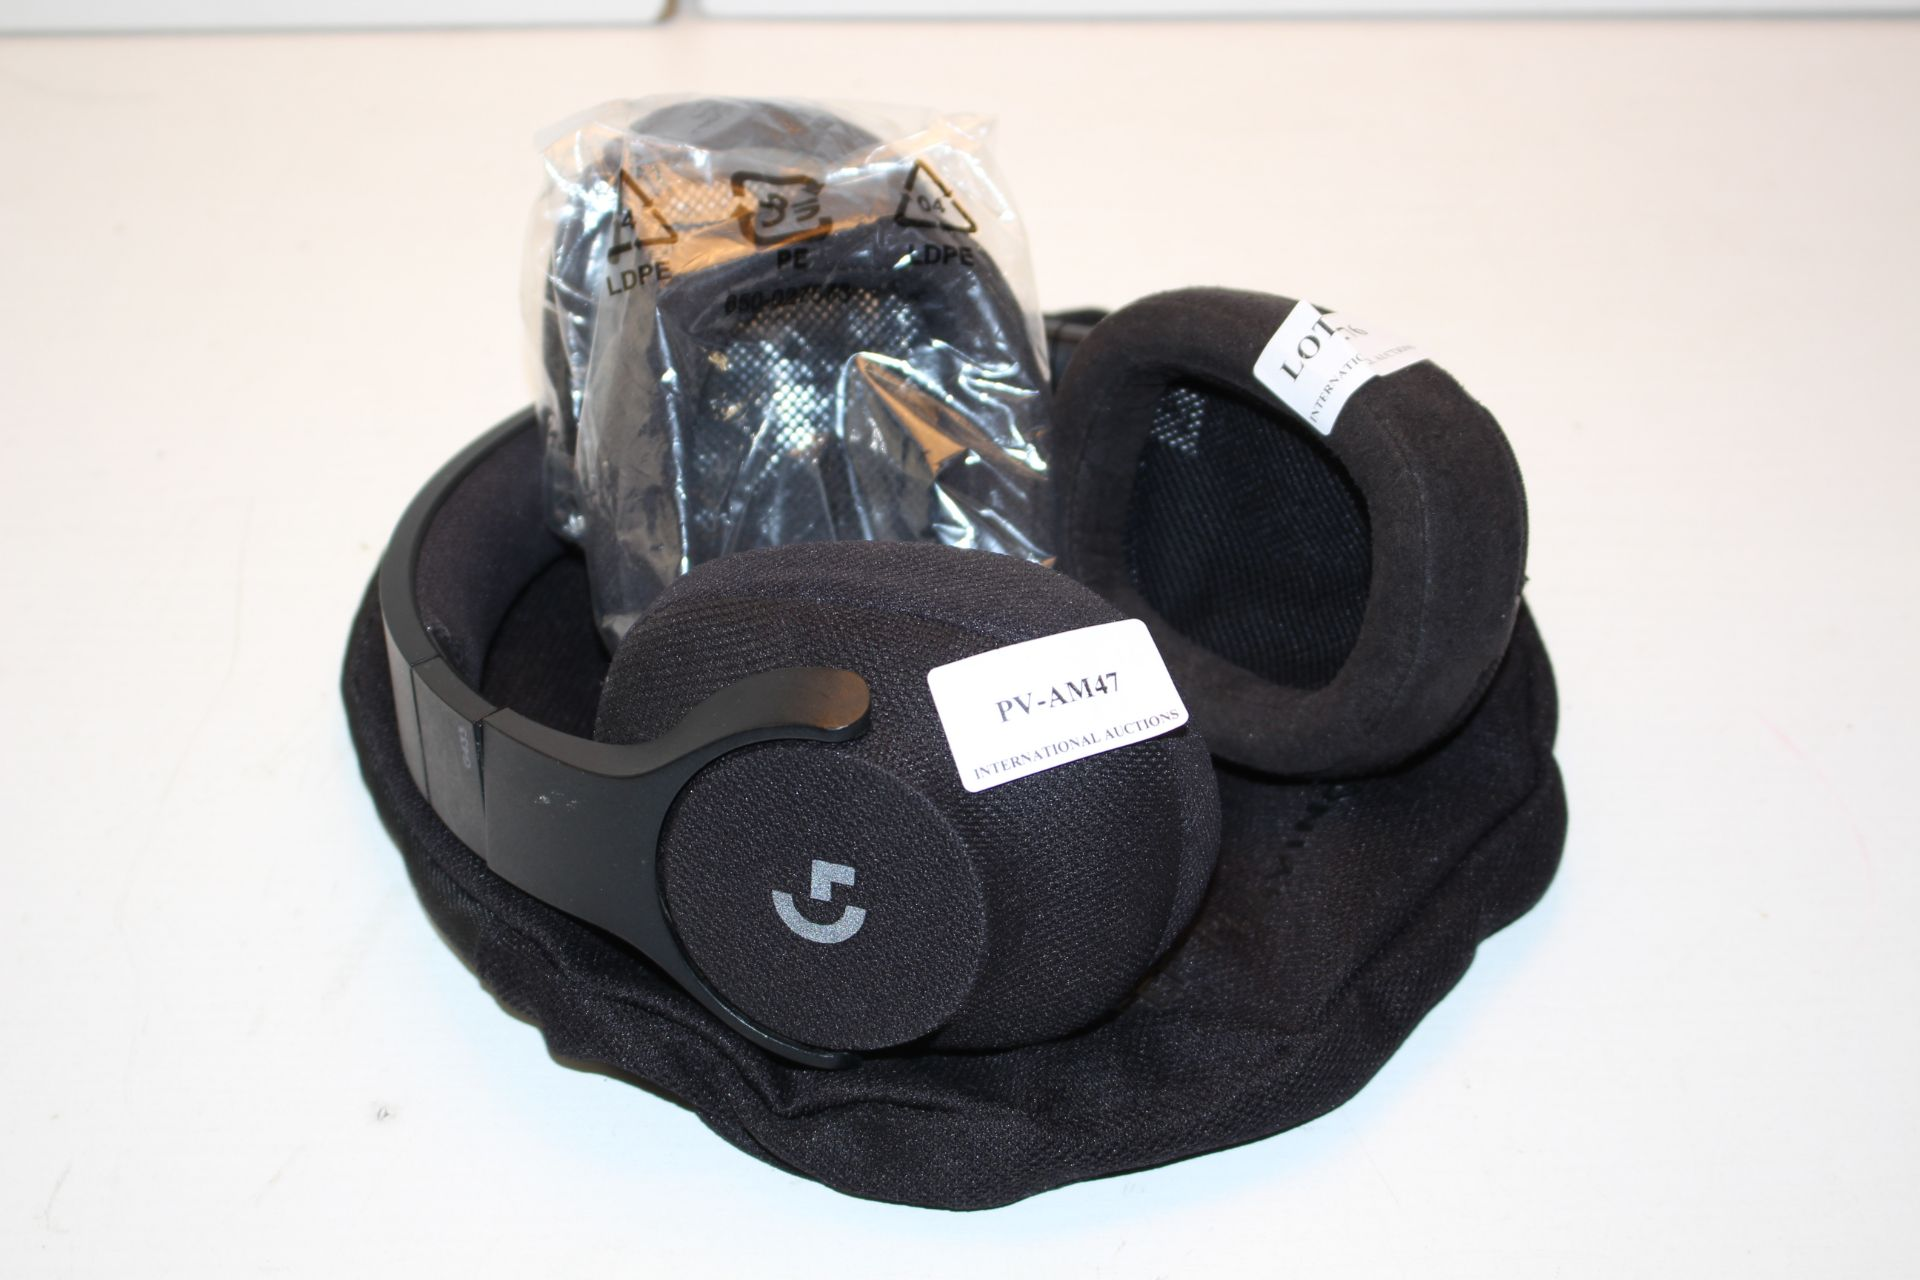 UNBOXED LOGITECH KEEP PLAYING WIRELESS GAMING HEADSET Condition ReportAppraisal Available on